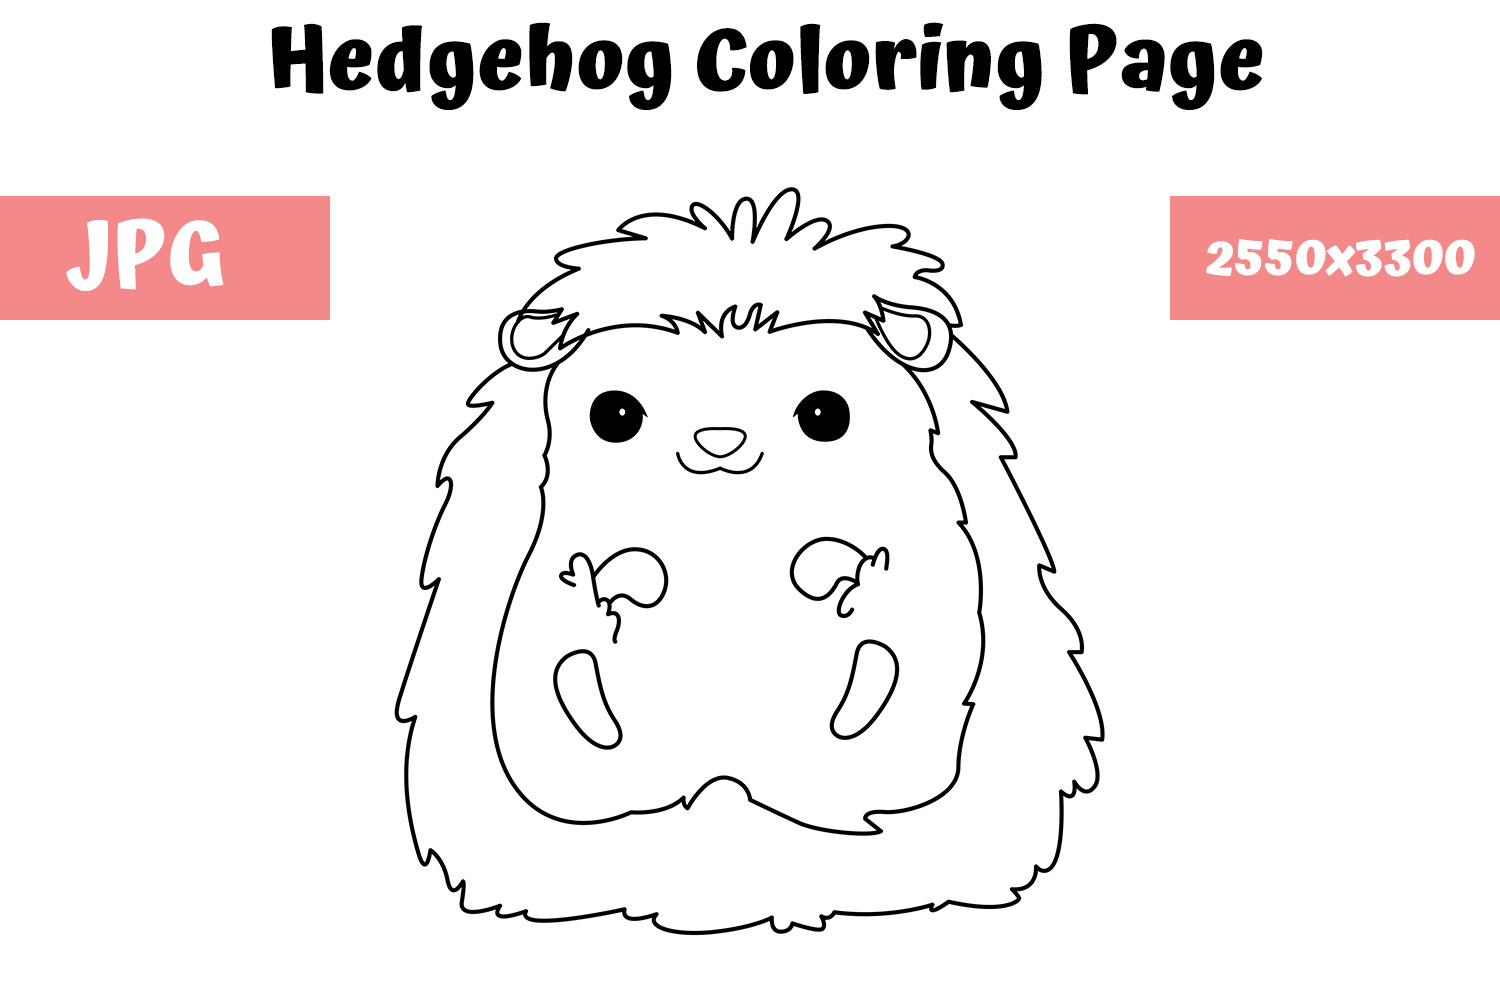 Sonic The Hedgehog Coloring Pages Pdfable Format Download – Slavyanka | 1000x1500